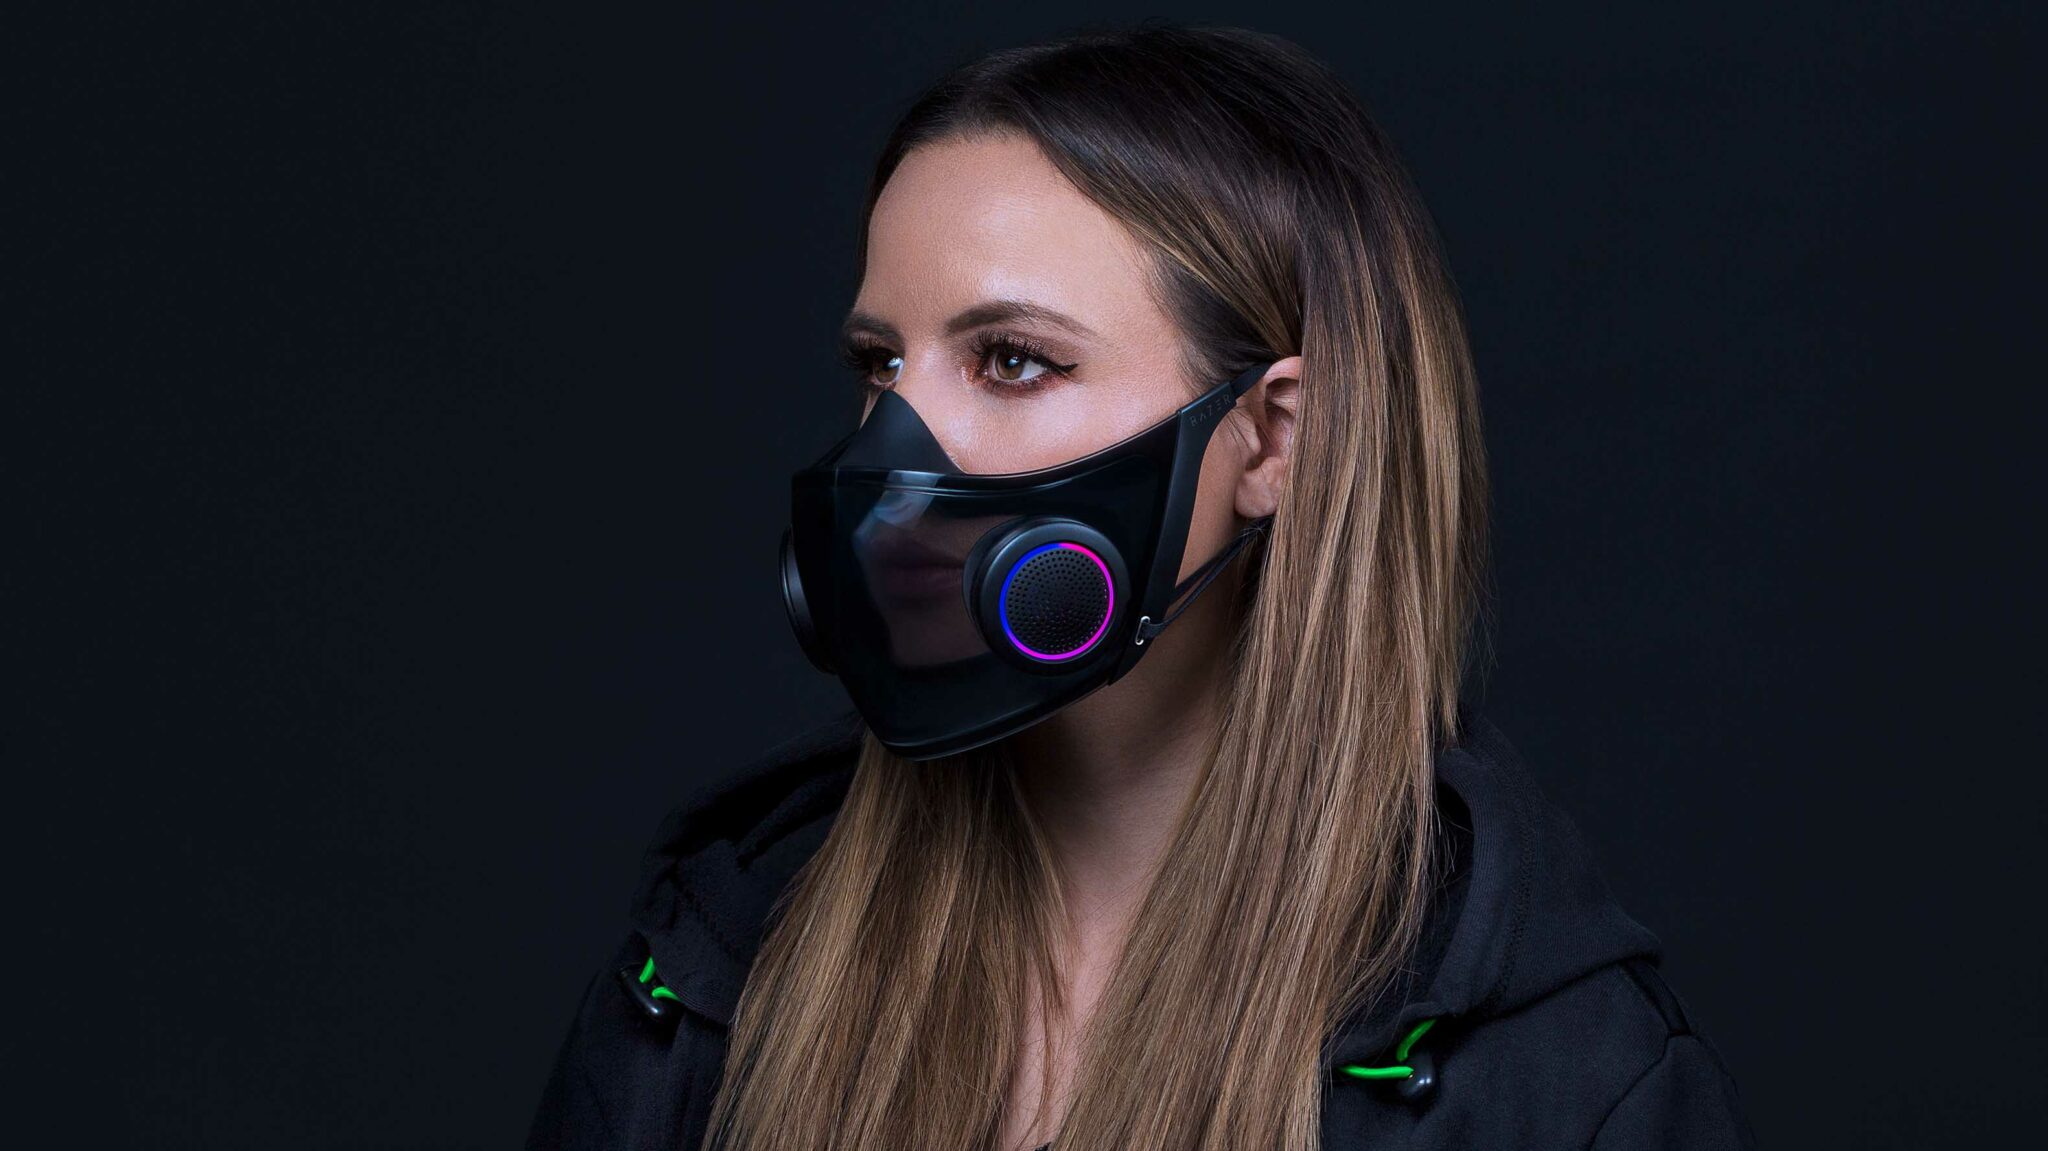 Razer's CES concepts include a mask with RGB lighting and an immersive gaming chair